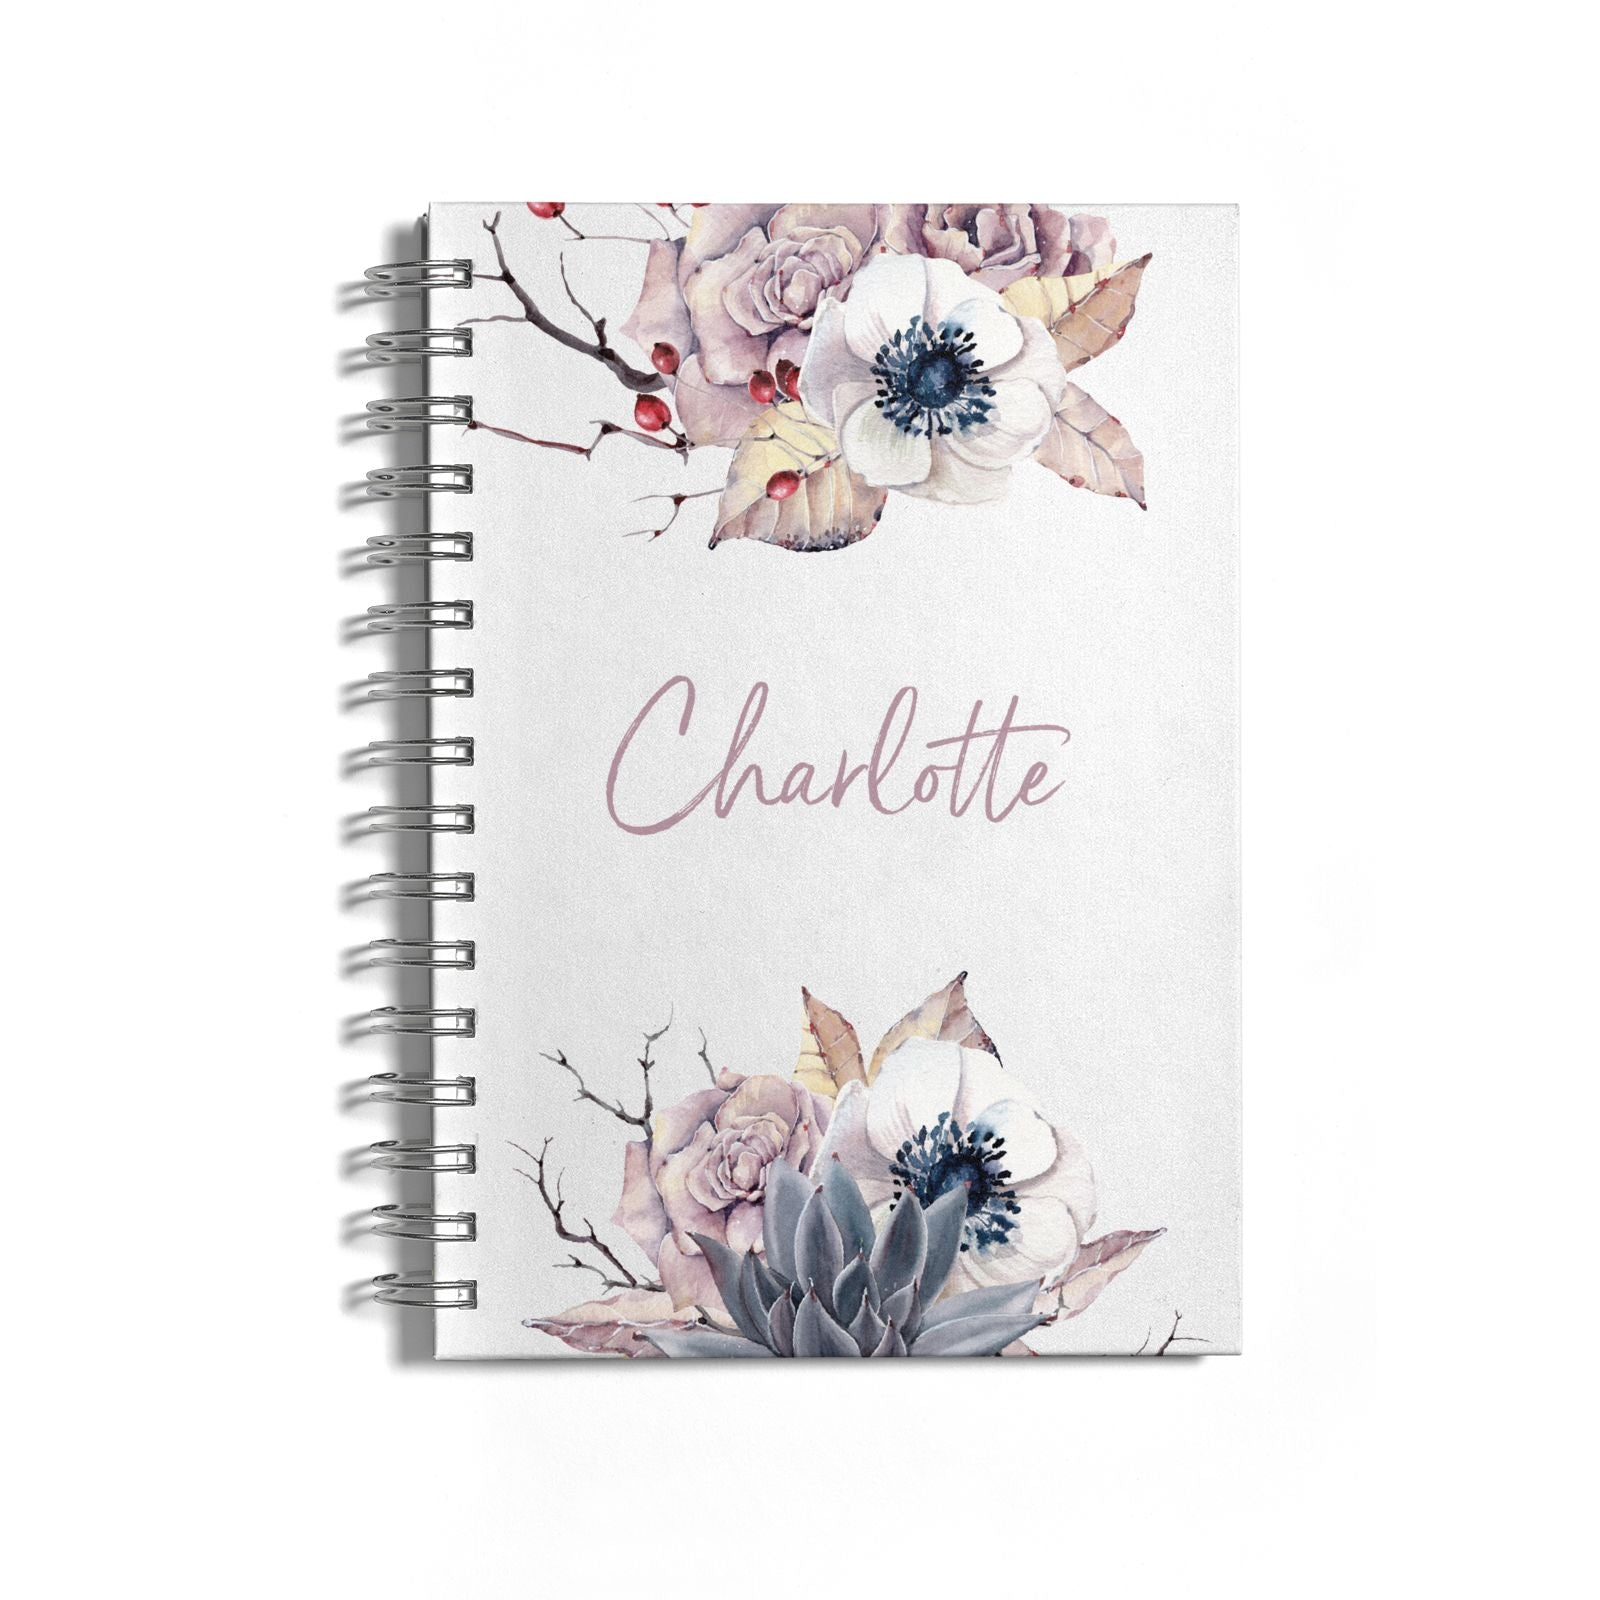 Personalised Autumn Floral Notebook with Silver Coil